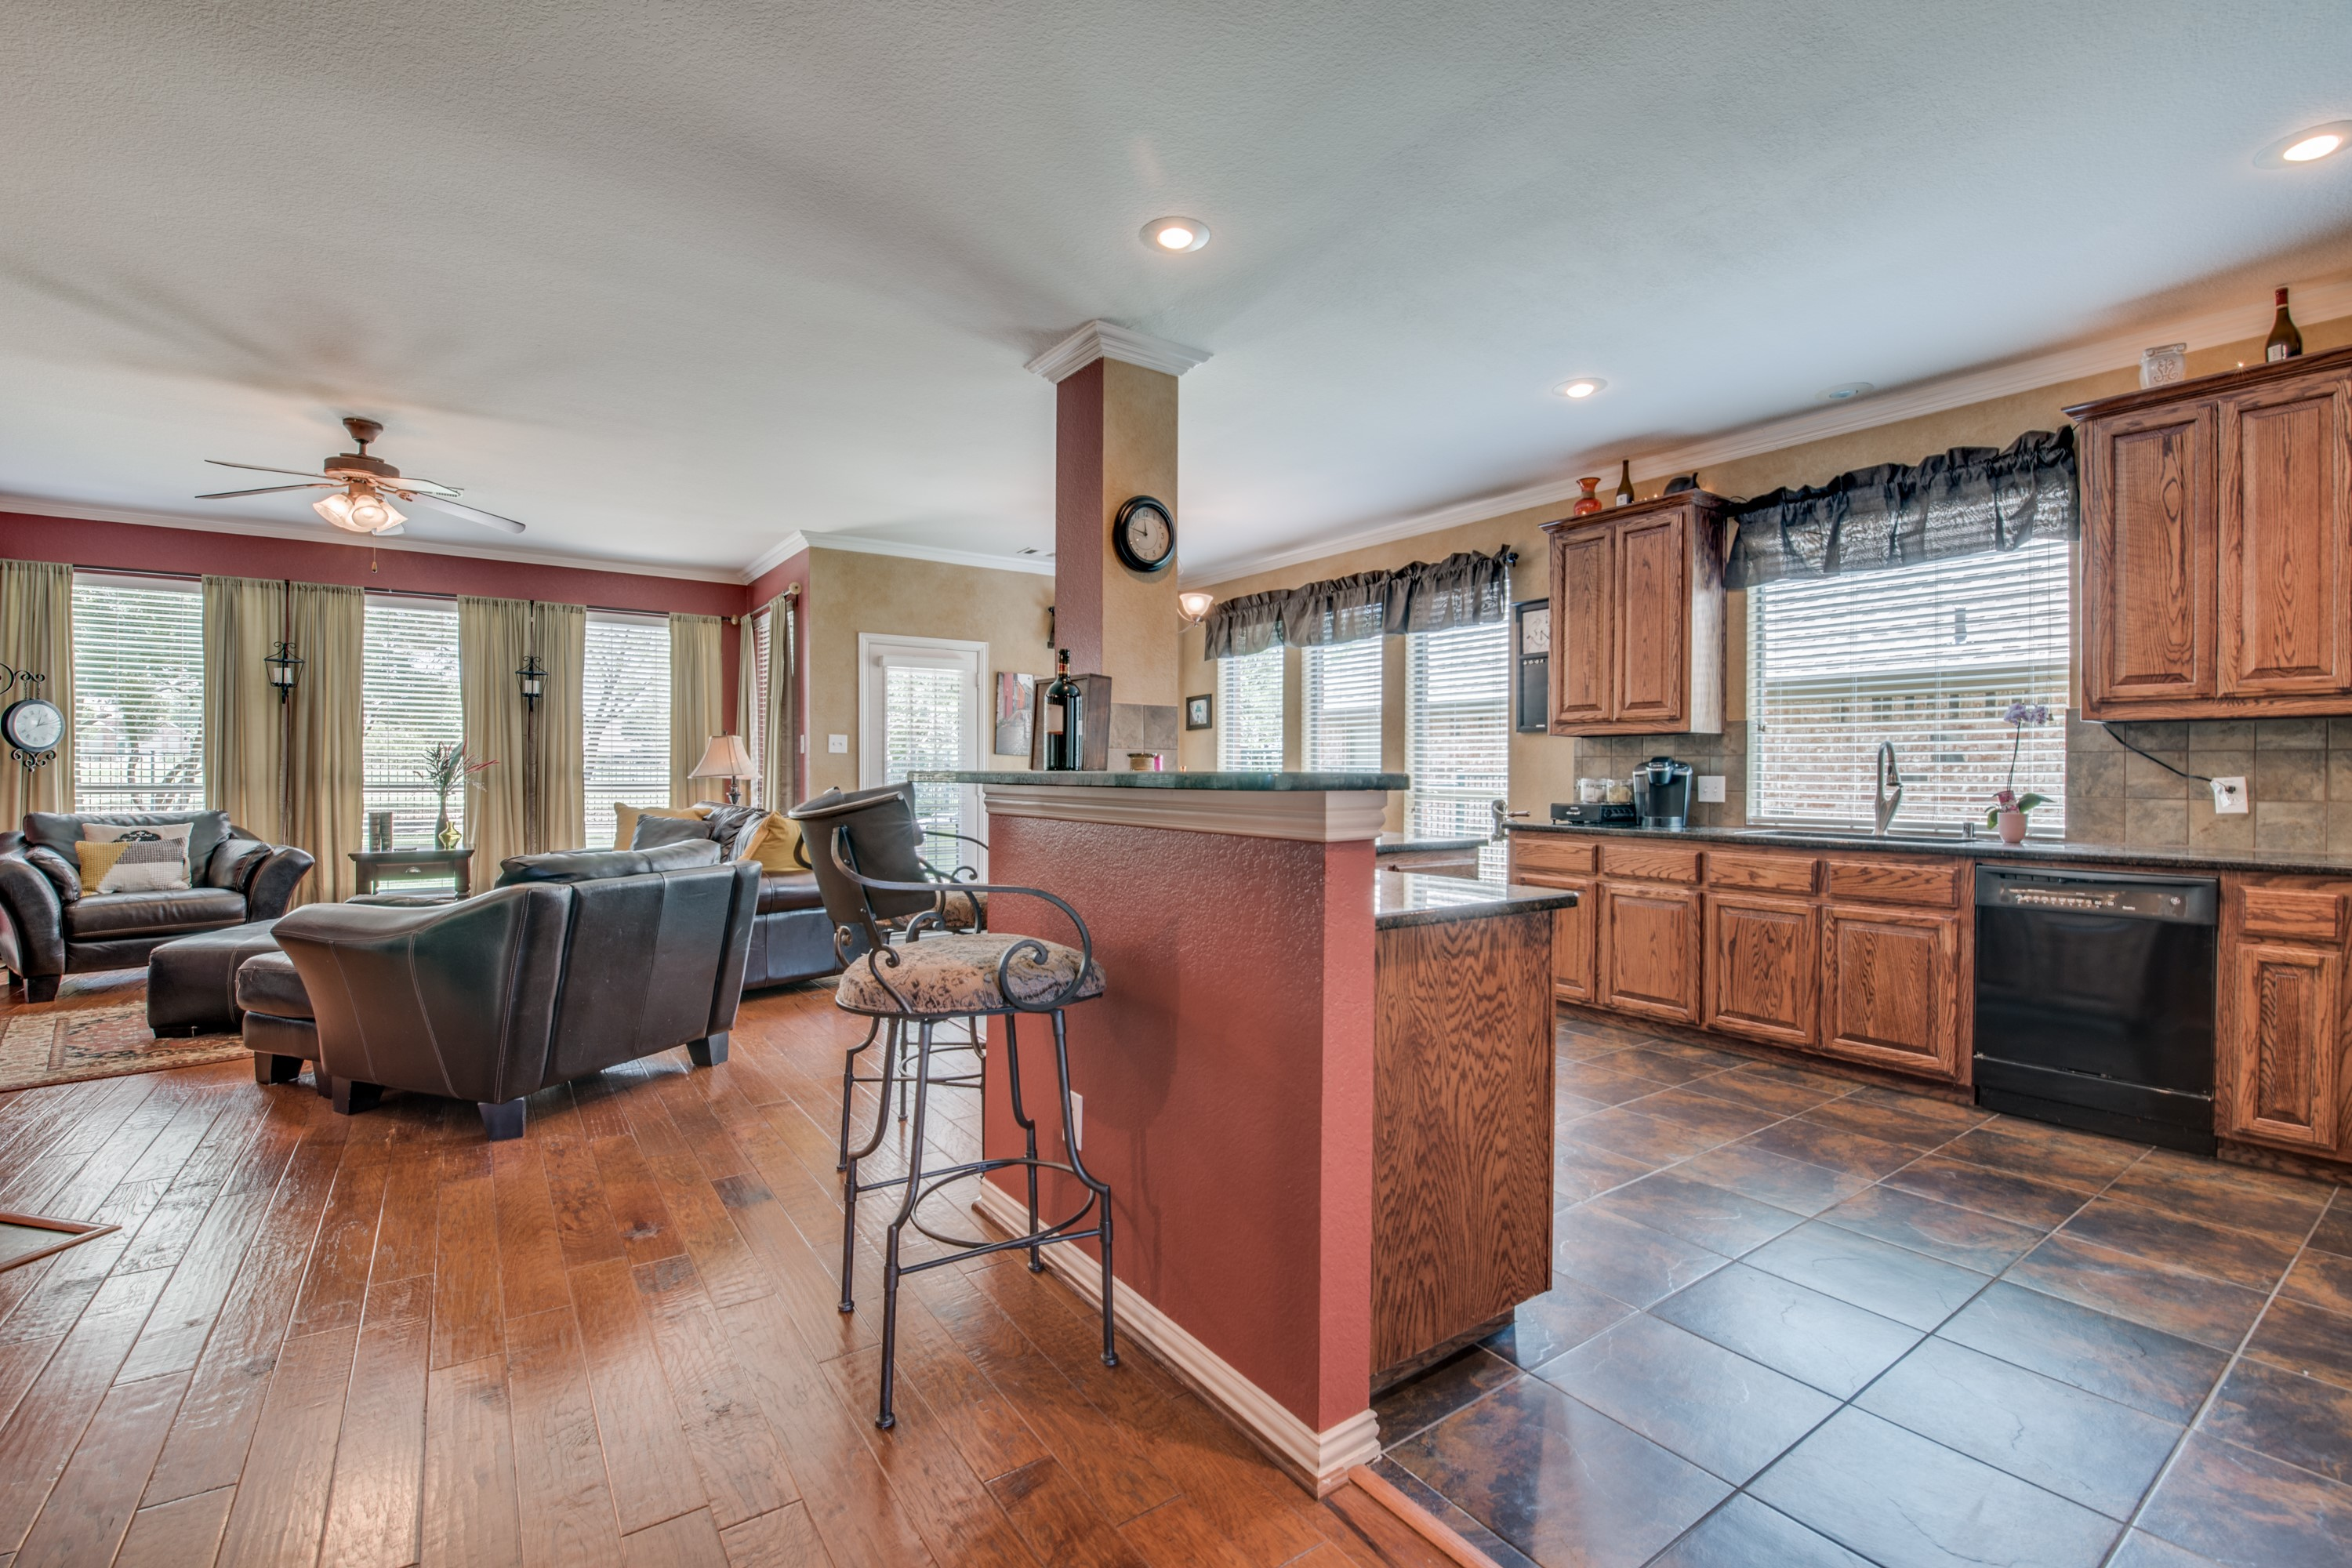 11422 Tenison kitchen